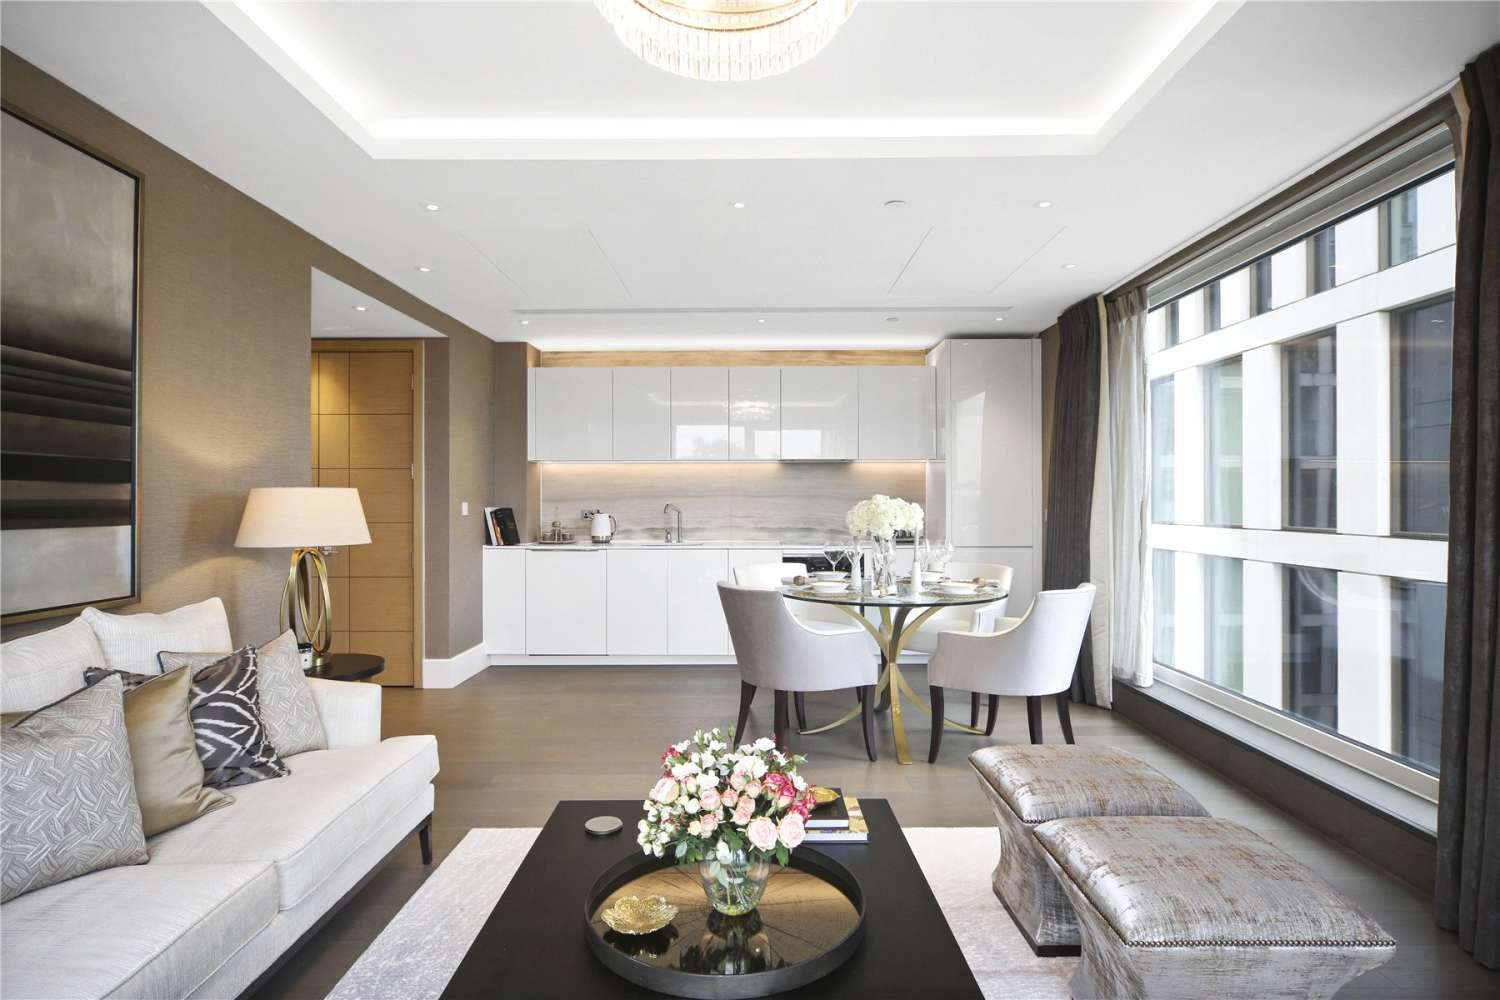 Apartment Kensington, W14 - Benson House 7 Radnor Terrace Kensington London - 02